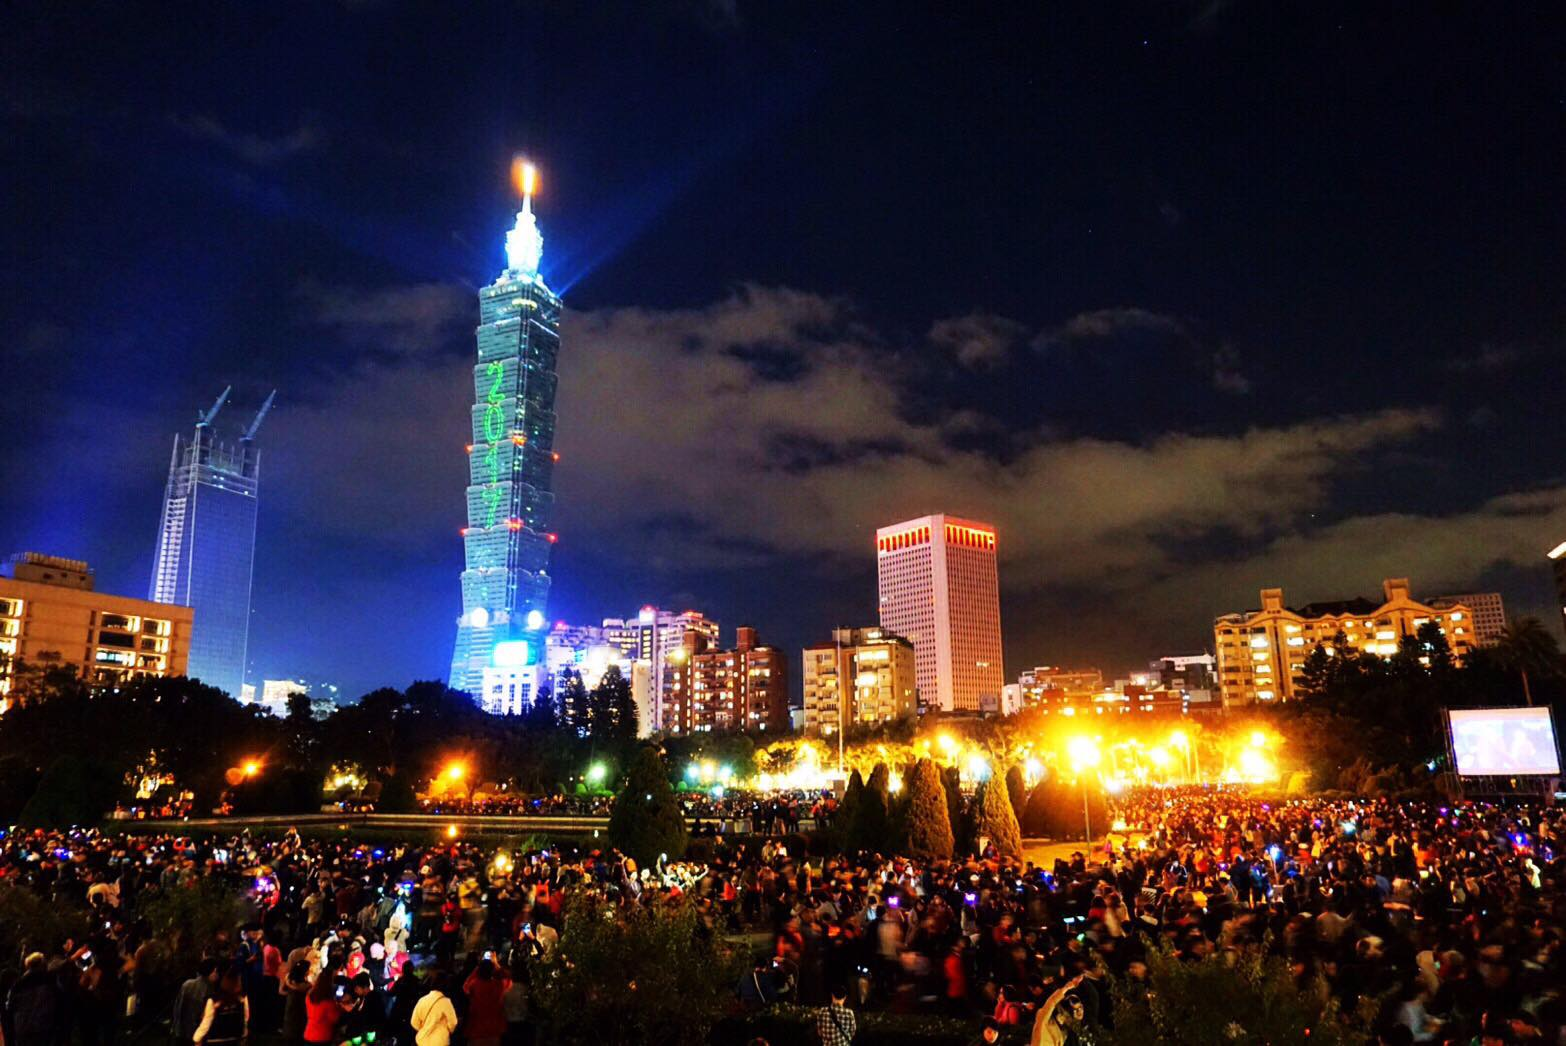 A night view of Taipei 101